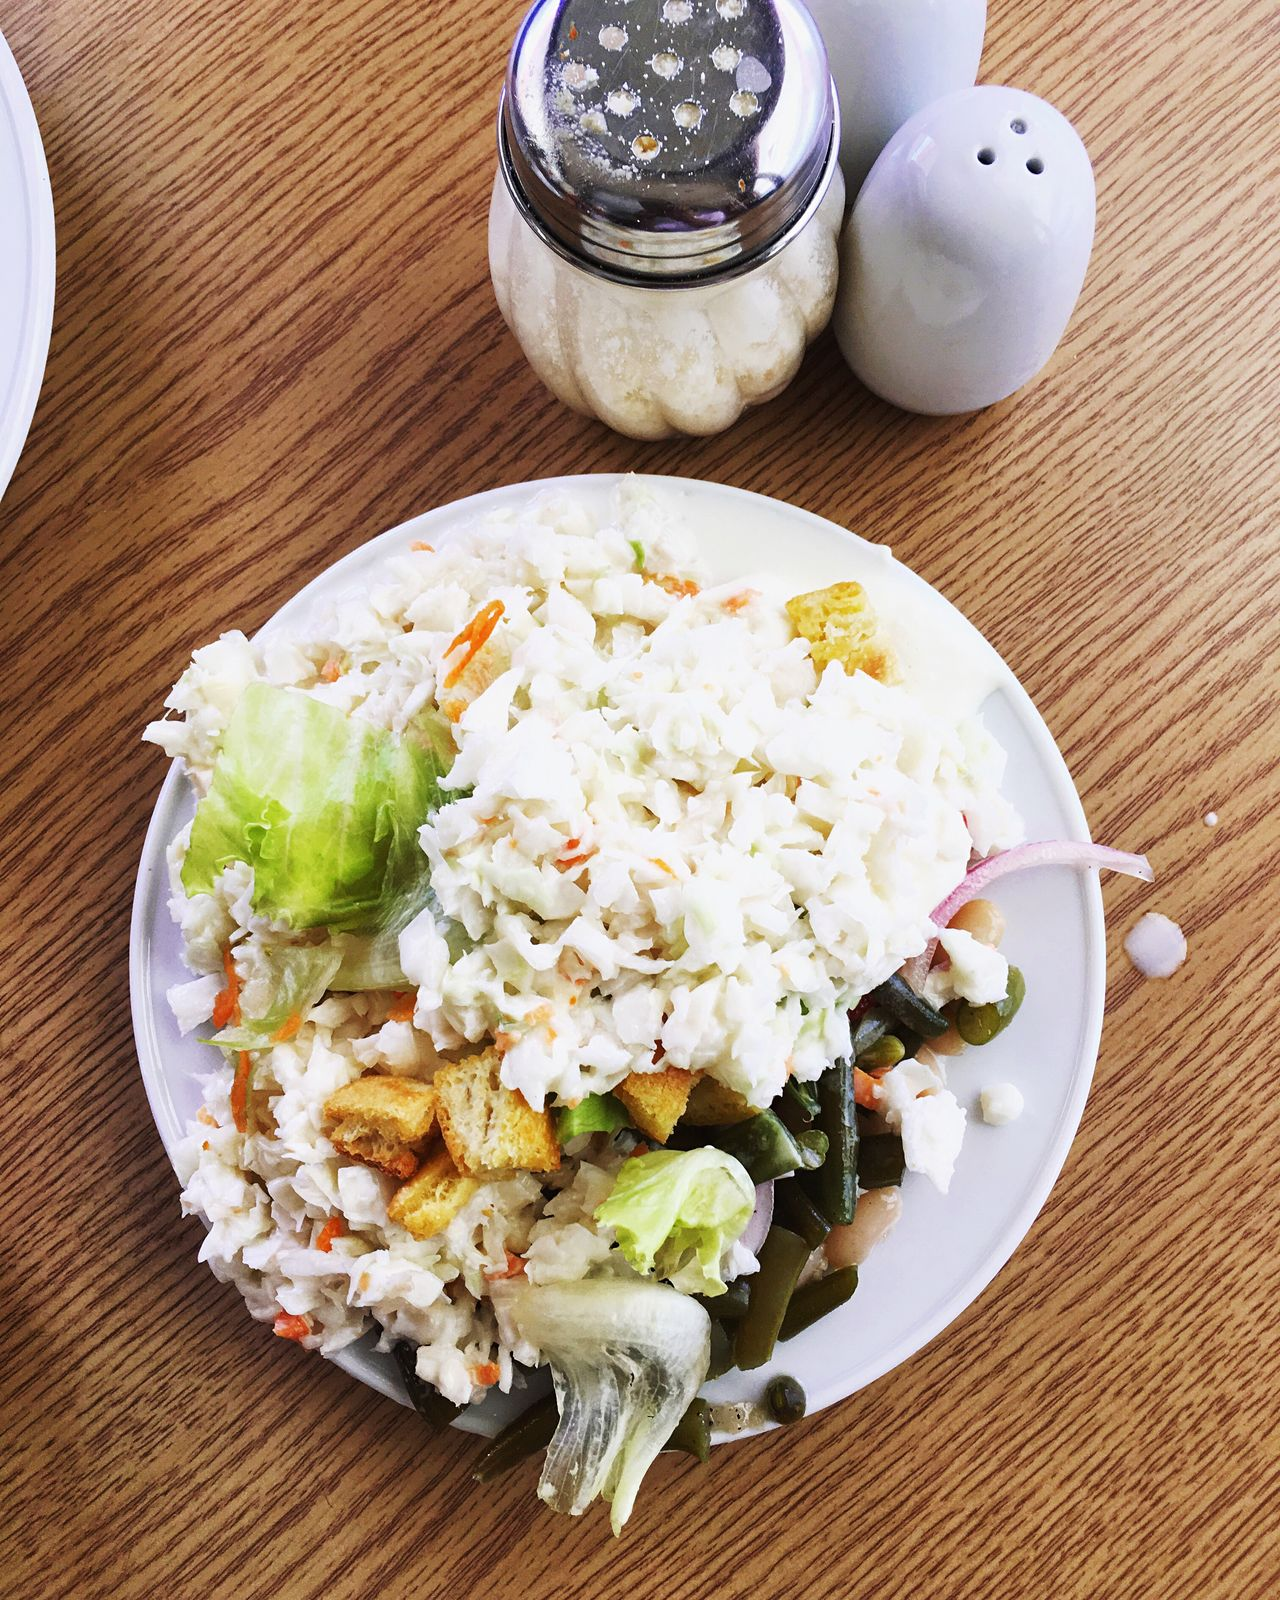 Salad Salade Salad Time Salads Restaurant Restaurants View From Above Dish Ready-to-eat Ready To Eat Food Fresh Vegetables Vegetable Shaker Table